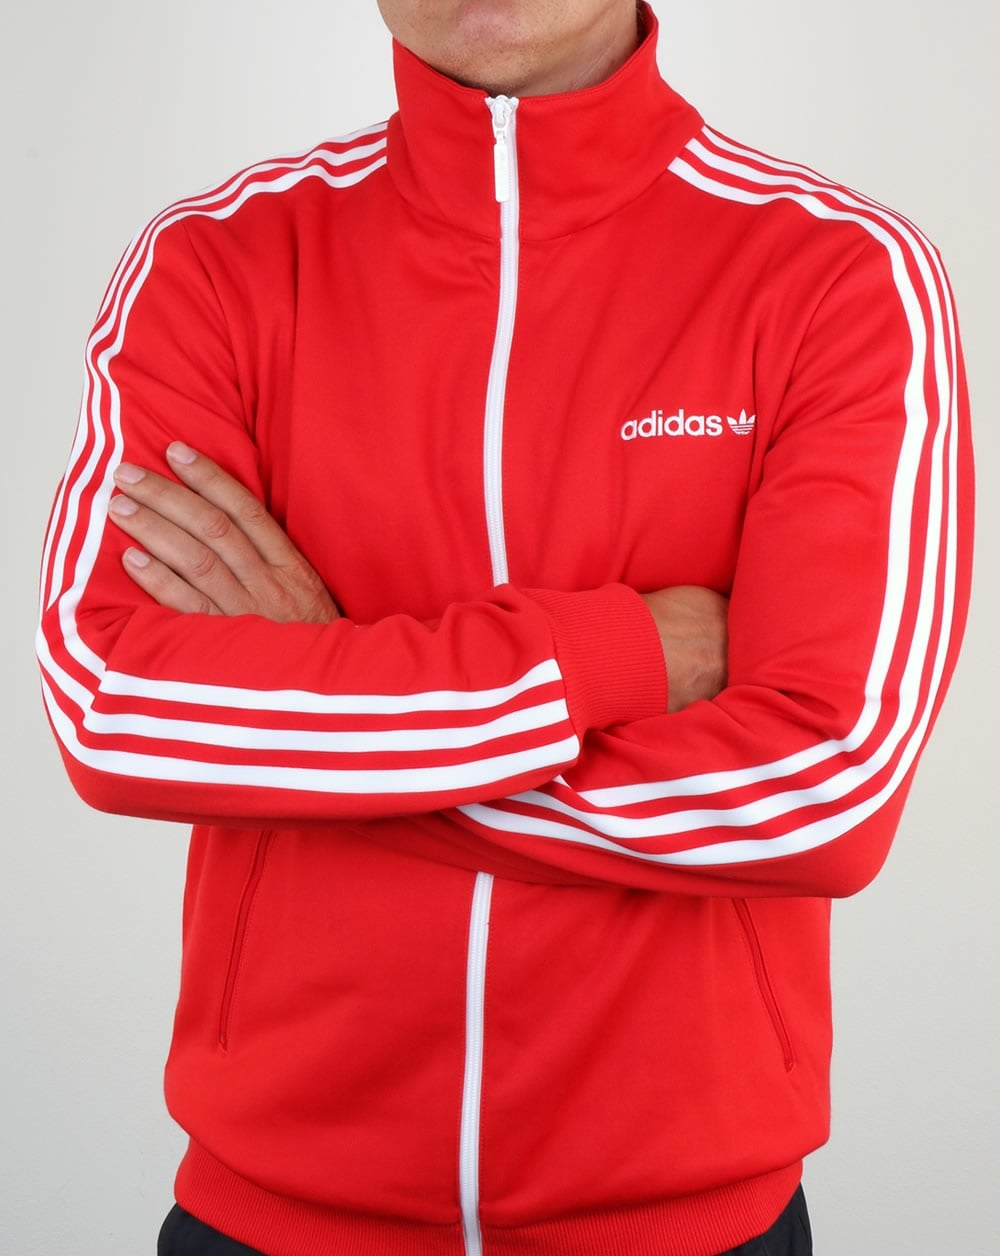 Adidas Beckenbauer Track Top Red Jacket Originals